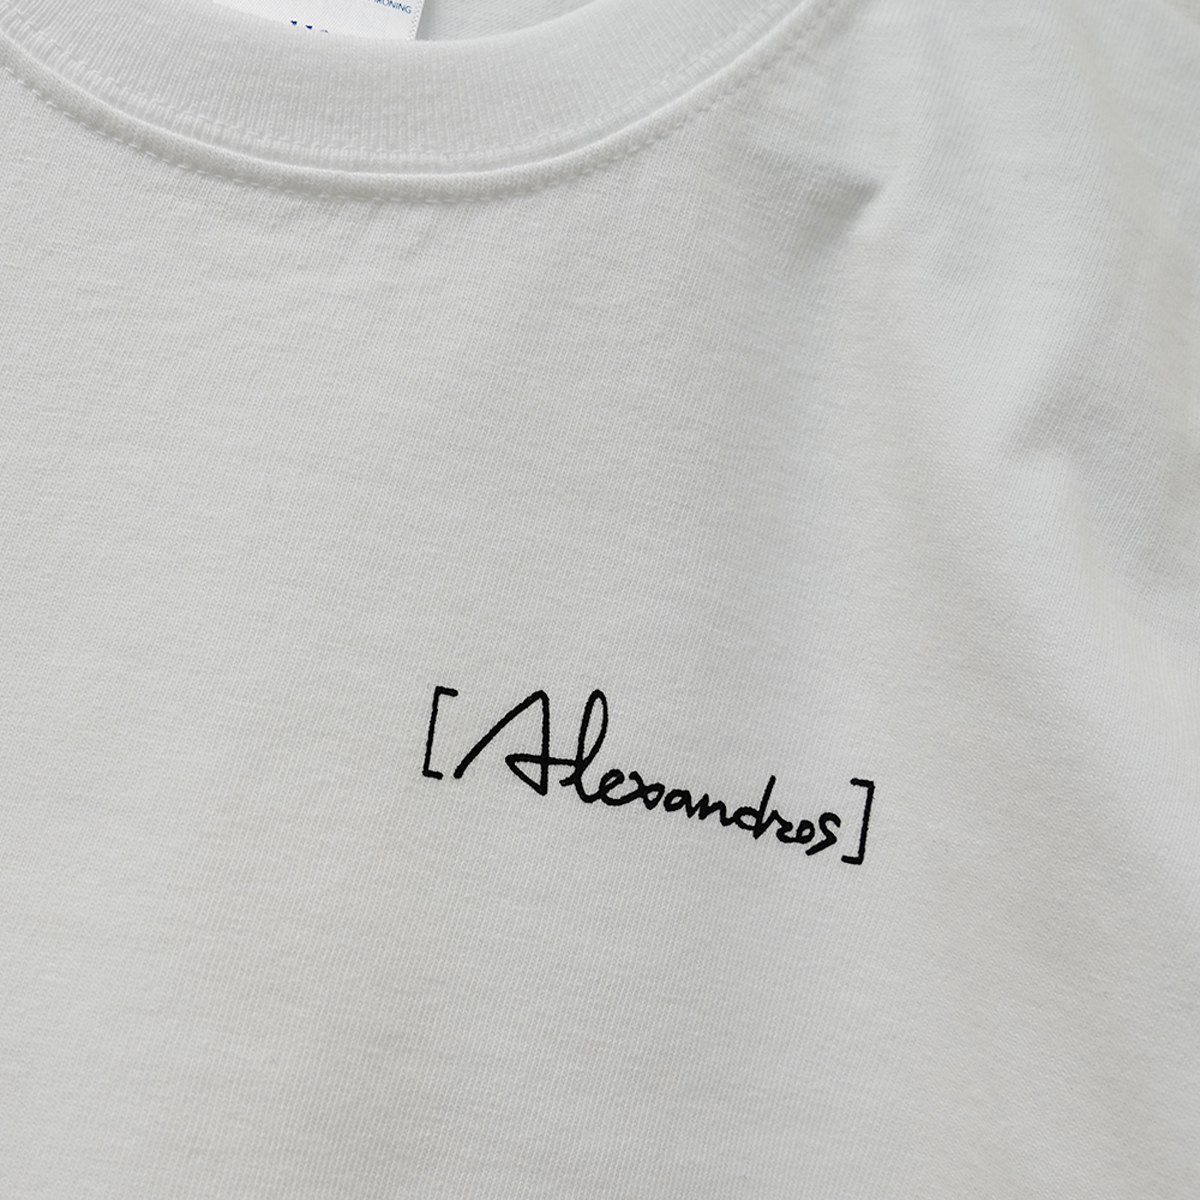 10th Anniv. Limited TEE 【 90 size (Kids size)】